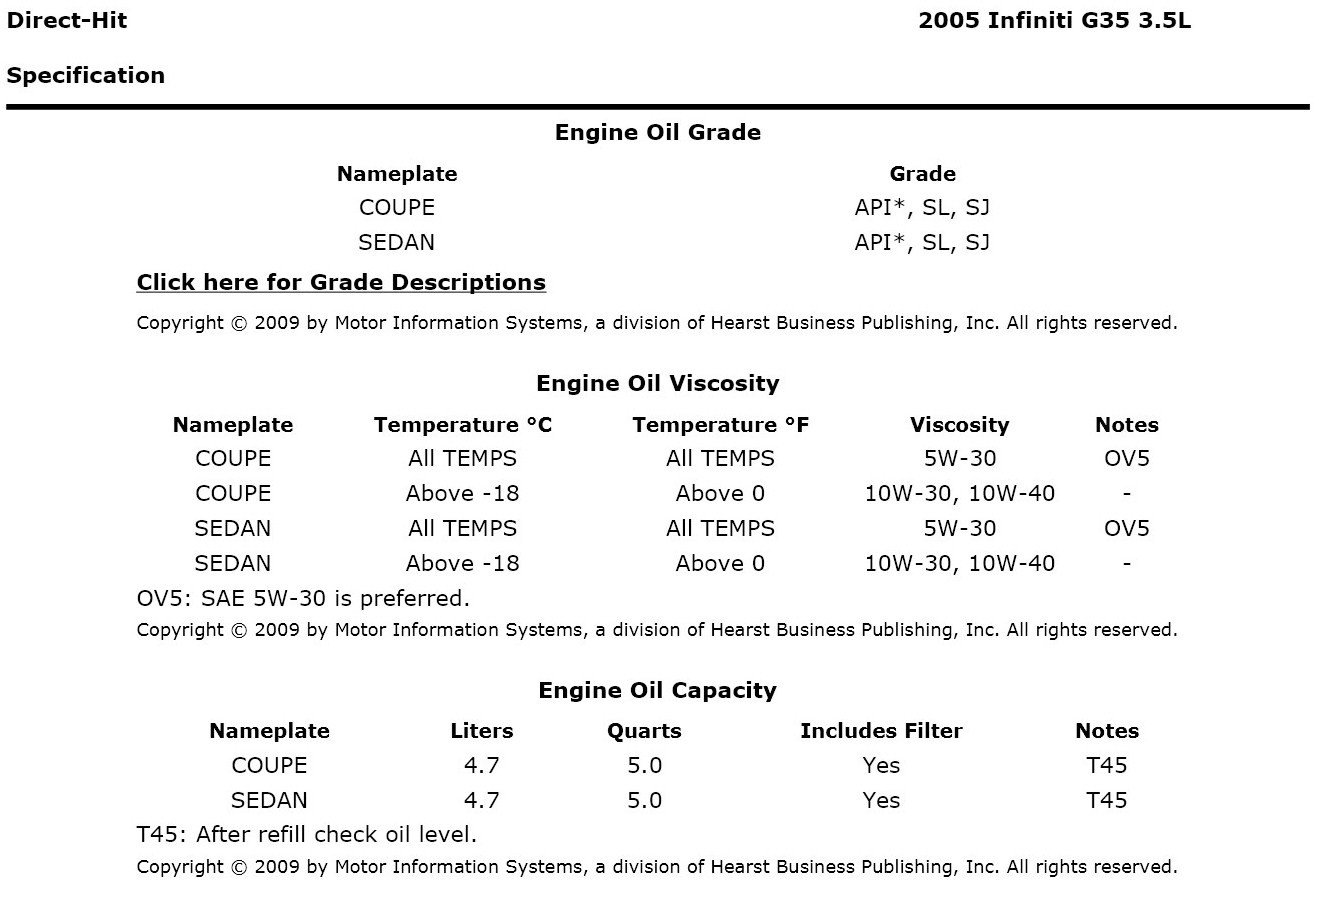 What Engine Oil In Recommended For 05 Infiniti G35 Is The 2005 Sedan Fuse Diagram Manufacture Recommends Changing Coolant Every 60k Miles Here A Chart Your Specifications Let Me Know If You Have Questions Thanks